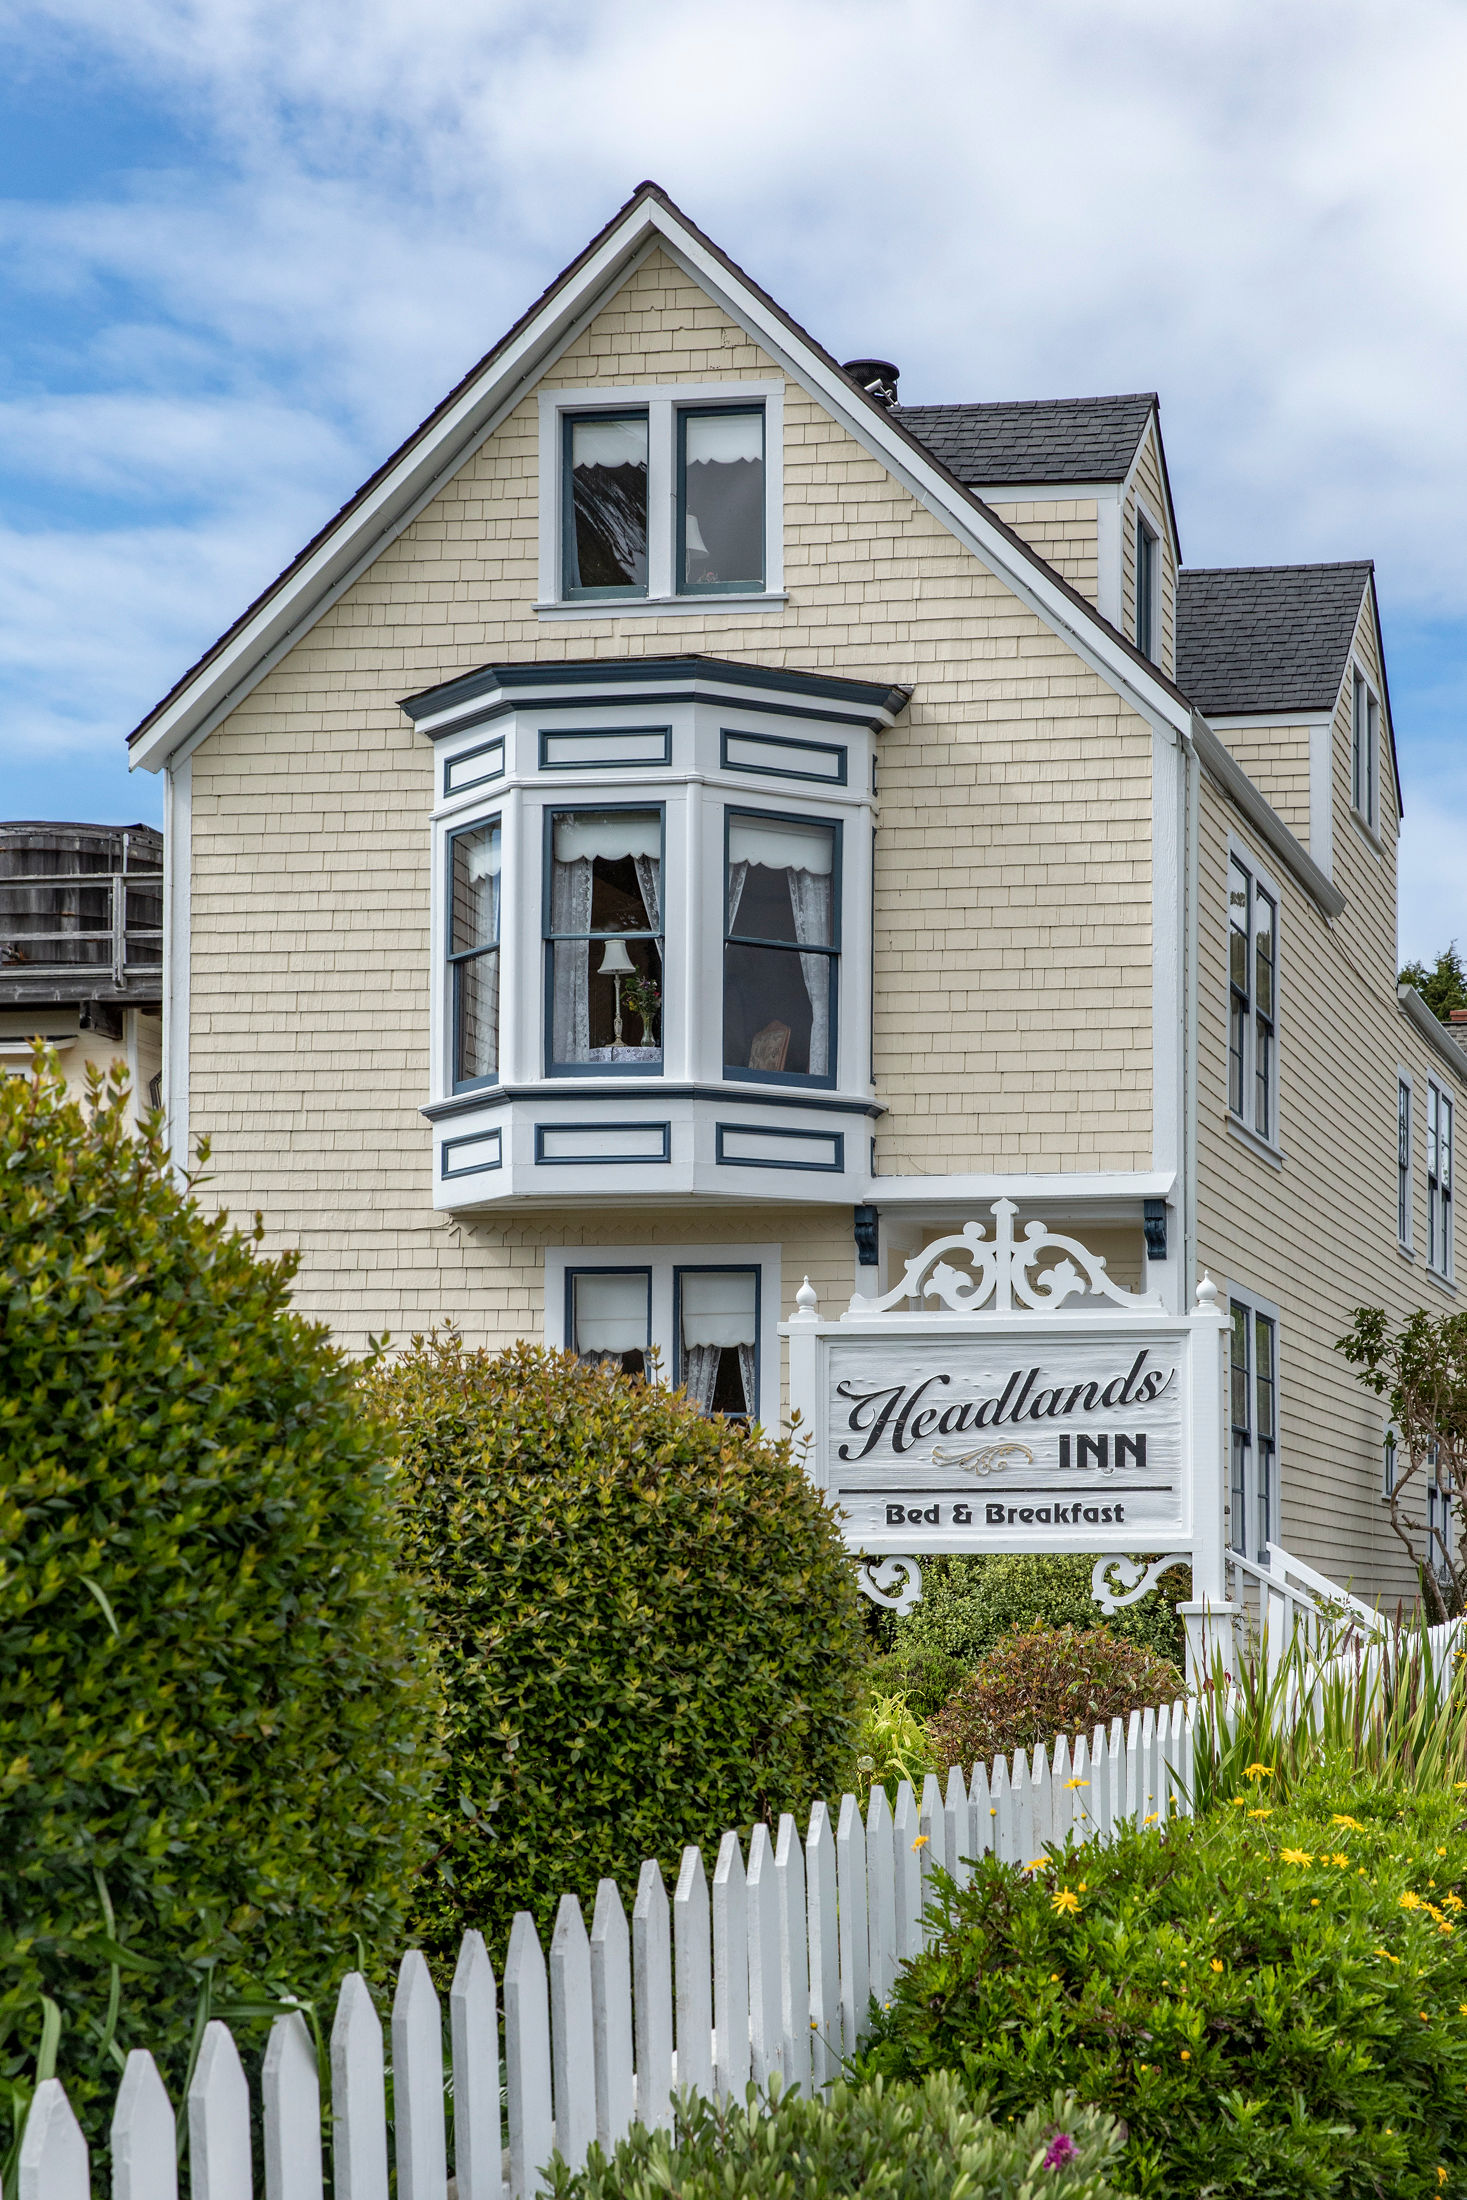 Charming Victorian architecture at Headlands Inn Bed & Breakfast in Mendocino, California